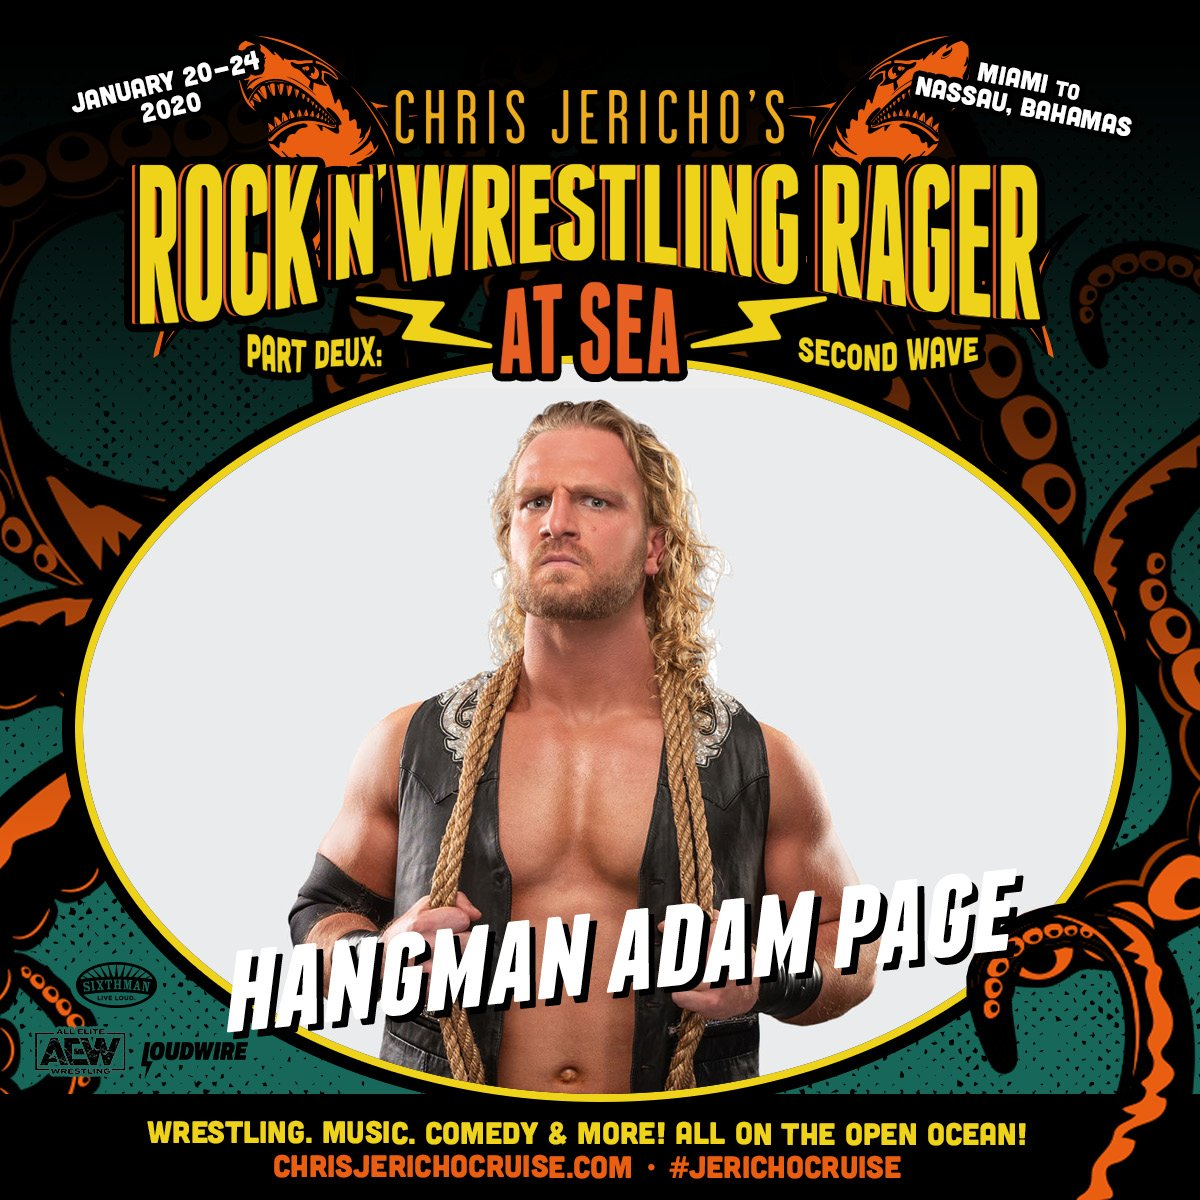 💥We've got @theAdamPage @MattJackson13 @NickJacksonYB and @RealBrittBaker on board The Ship of Jericho!! Book today to sail away with this @AEWrestling talent! http://www.chrisjerichocruise.com #jerichocruise